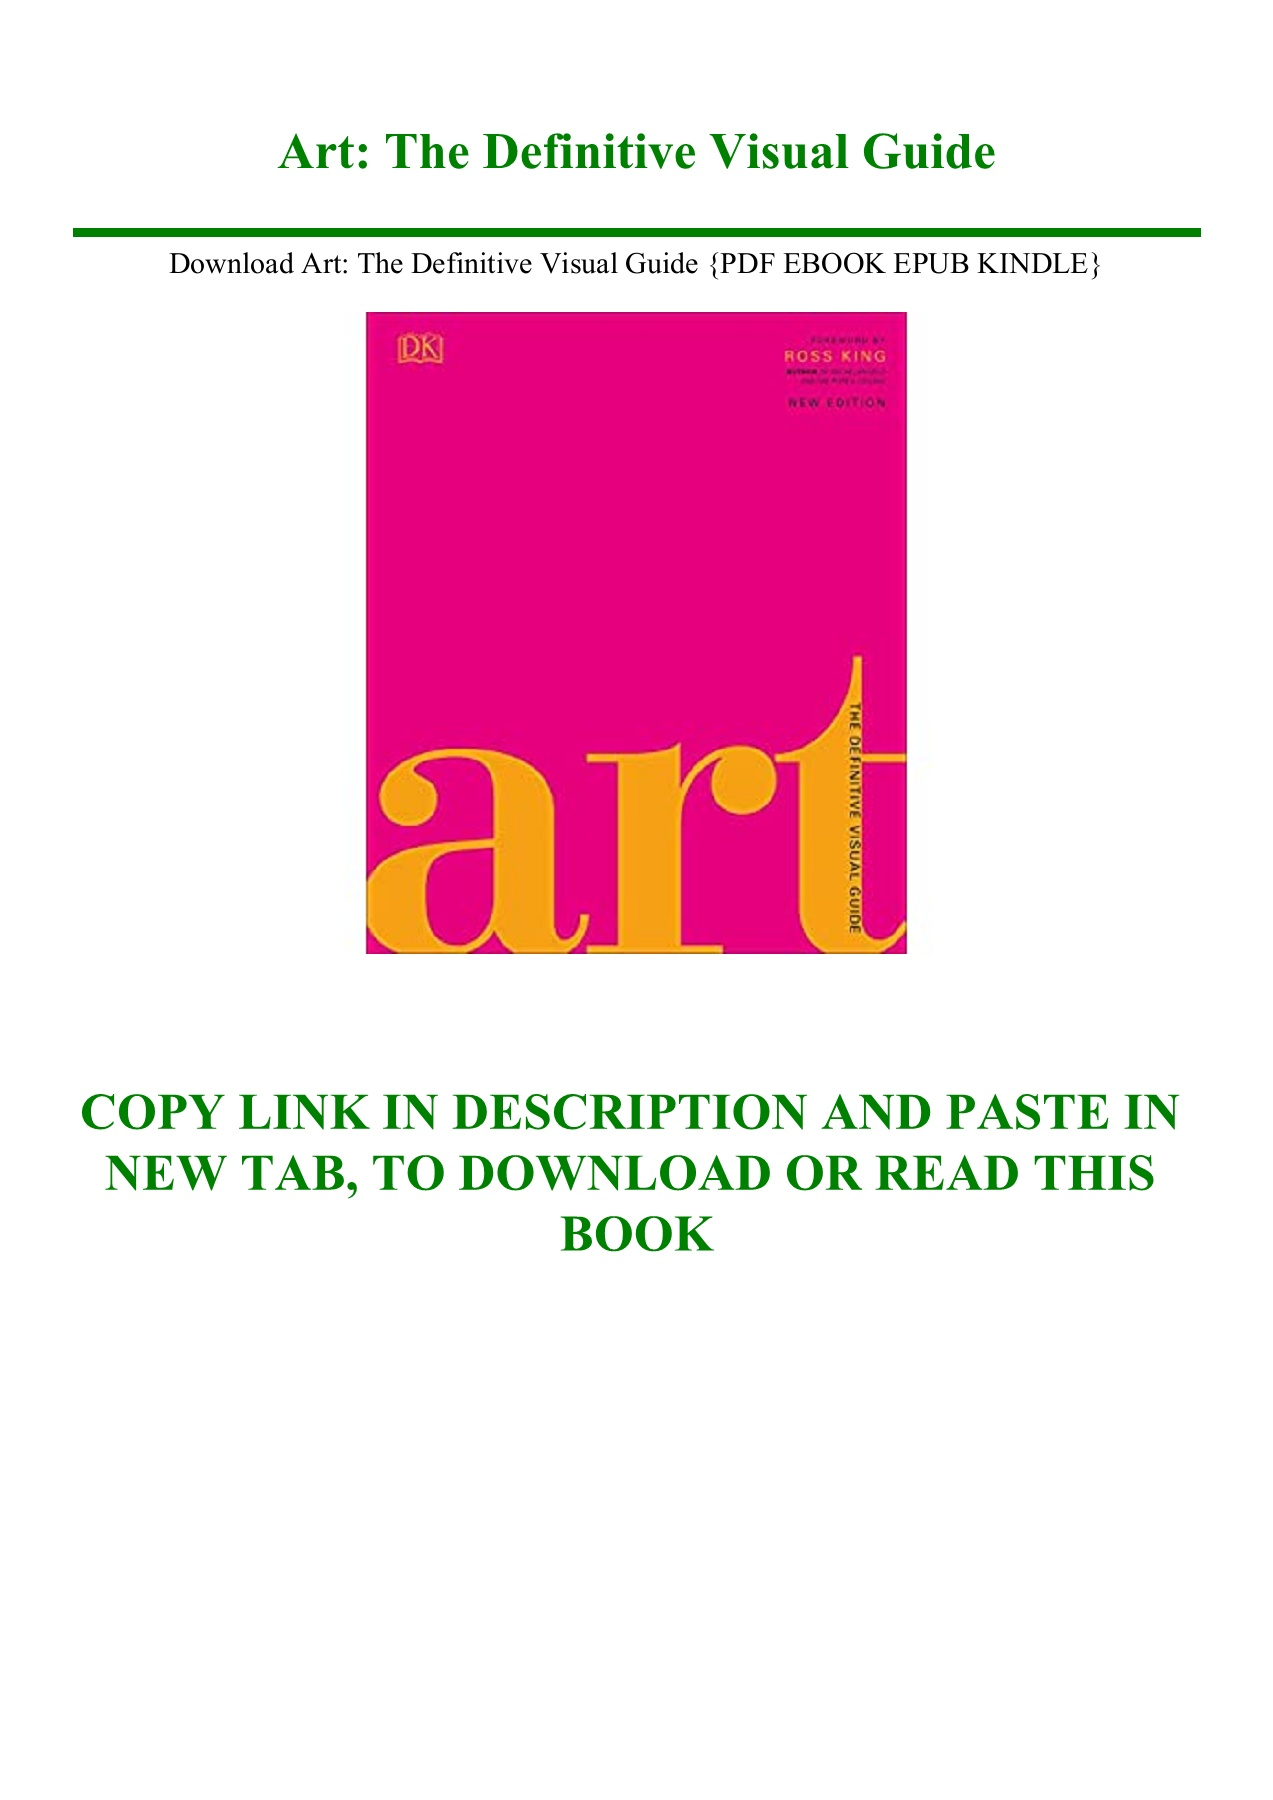 Art The Definitive Visual Guide : definitive, visual, guide, Download, Definitive, Visual, Guide, EBOOK, KINDLE}-igfqbnkihzefr, AnyFlip